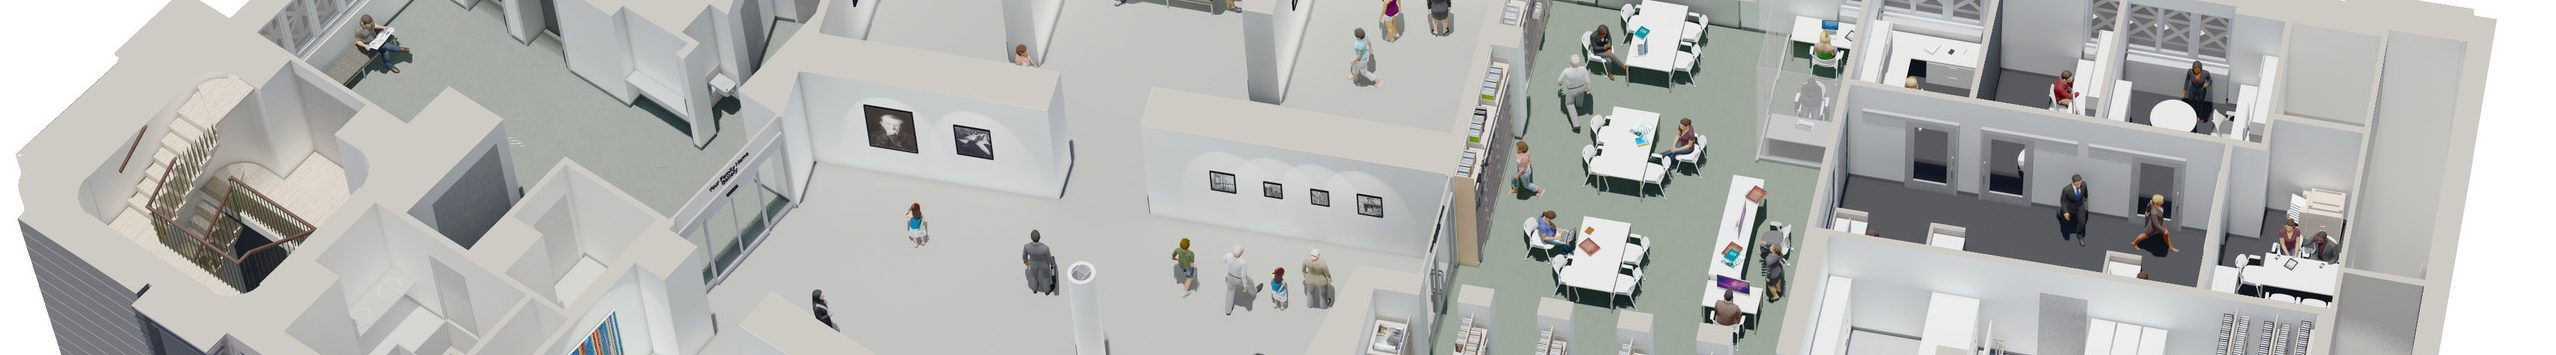 Rendering from above of the Library and Education Center.